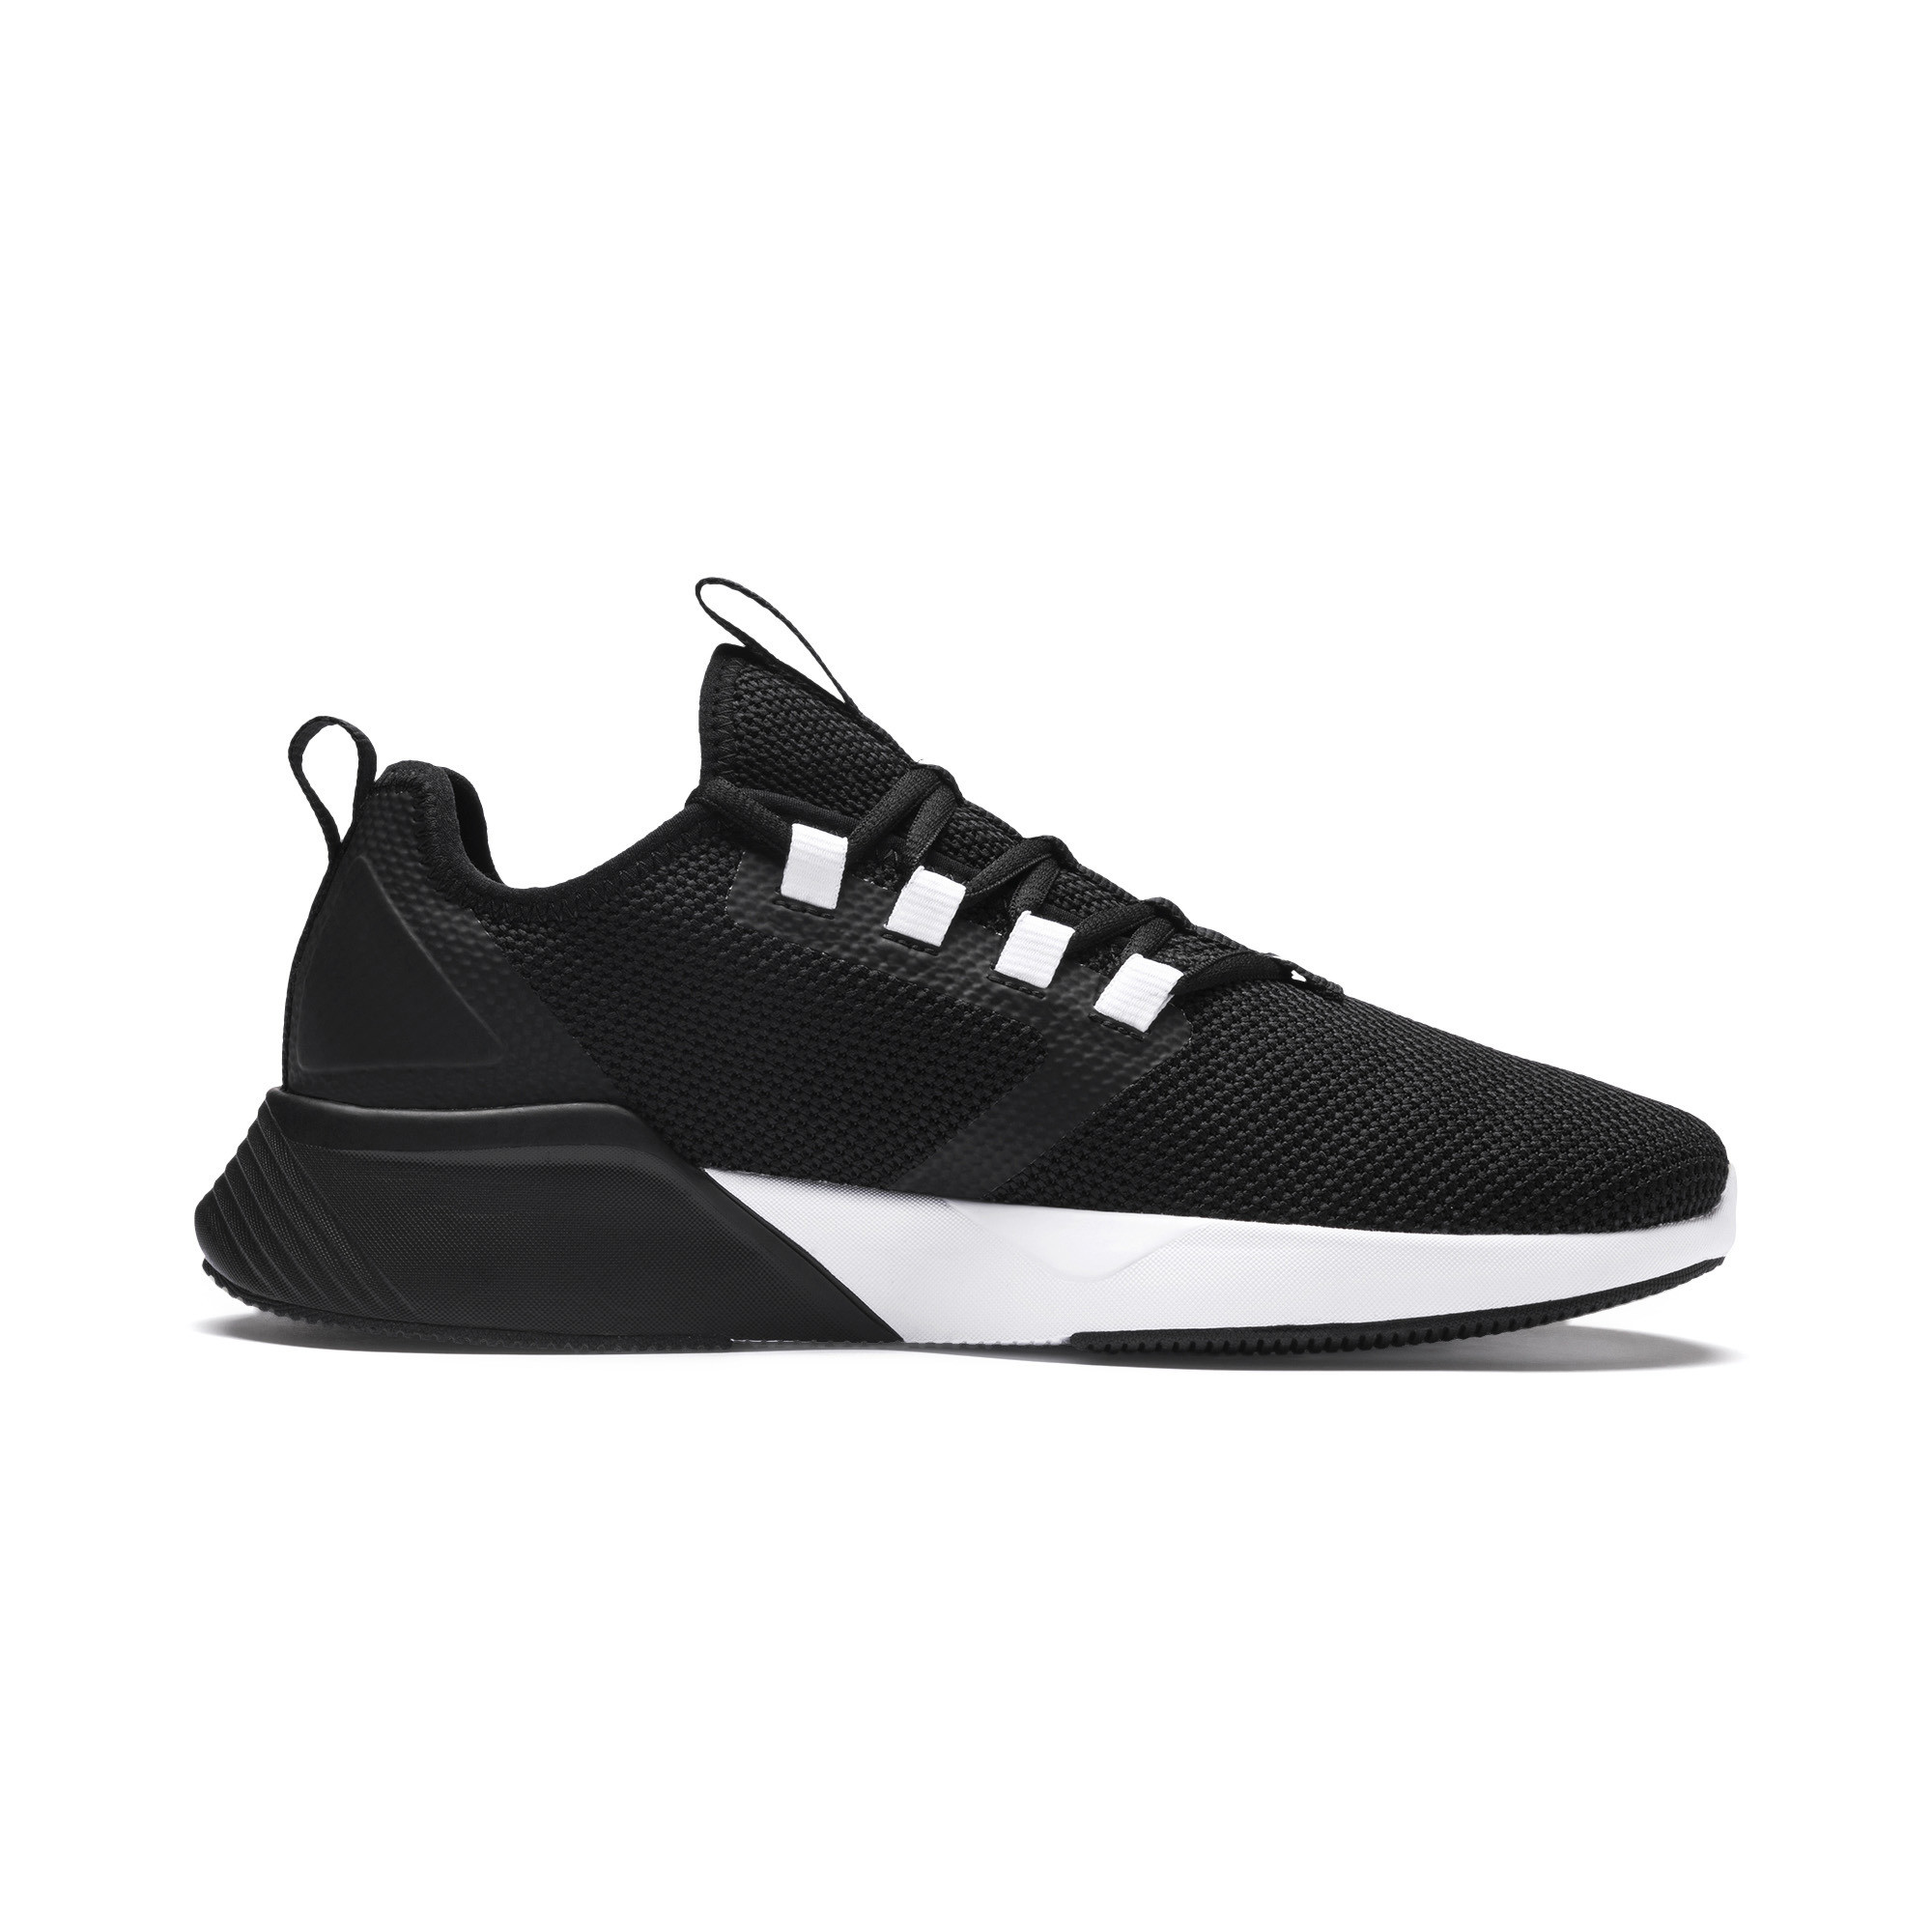 PUMA-Men-039-s-Retaliate-Training-Shoes thumbnail 8